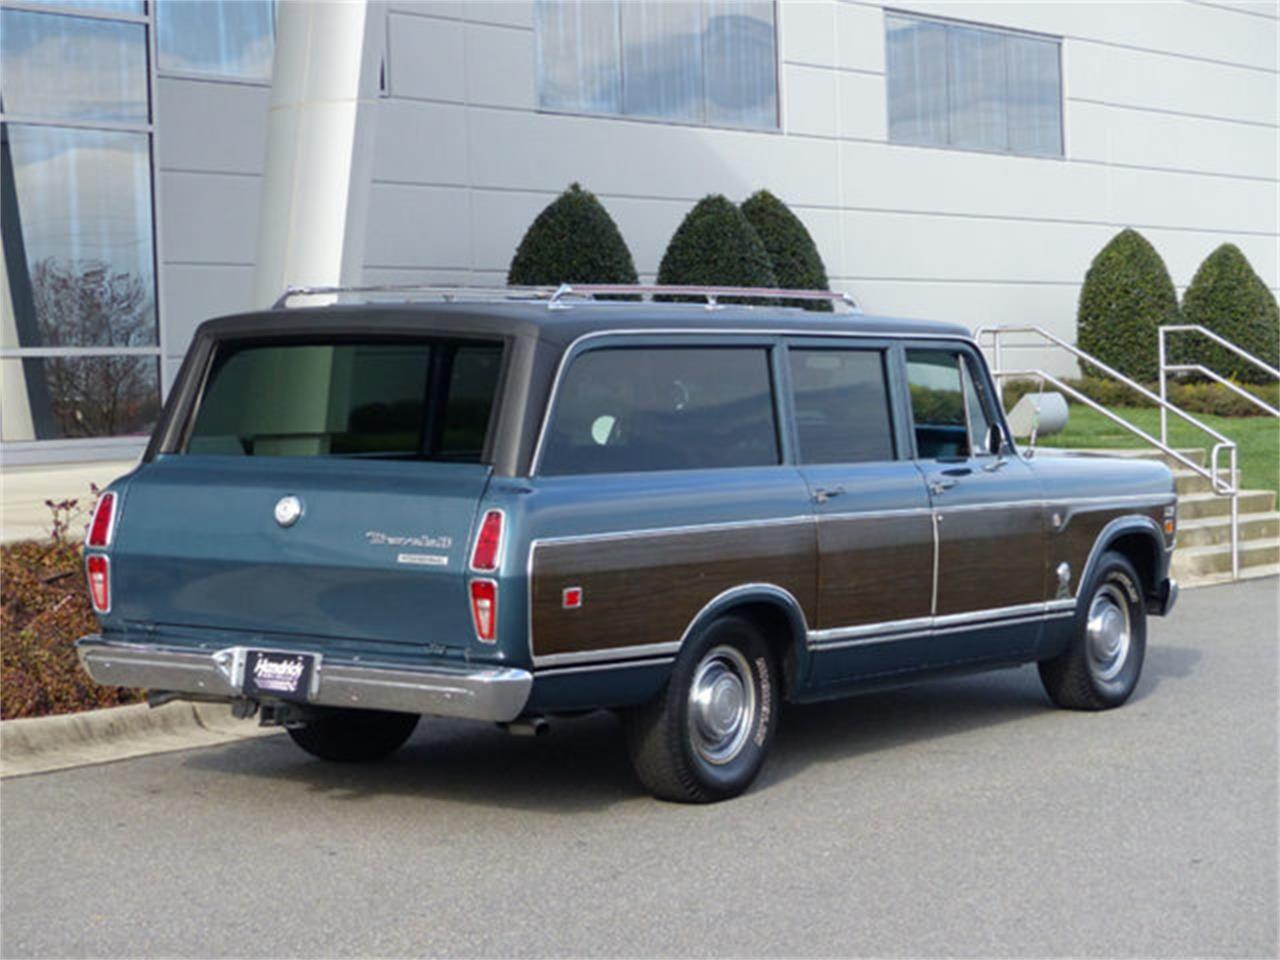 Large Picture of '73 International Travelall located in Charlotte North Carolina - $29,990.00 - Q4TC